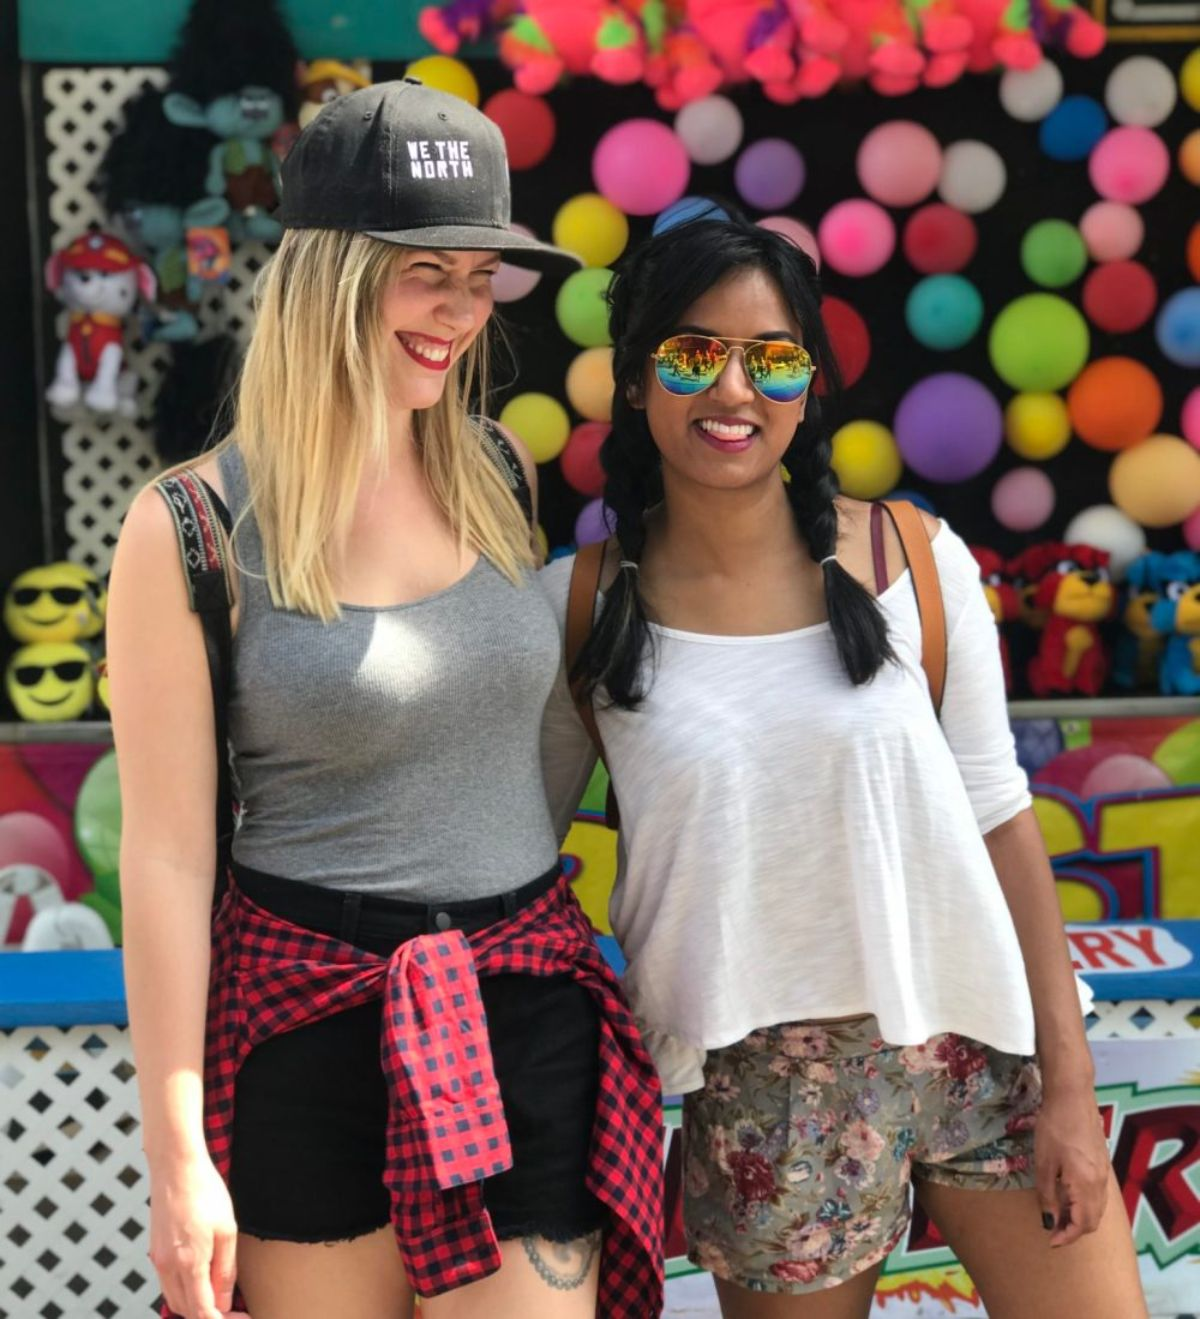 2 young women, one blonde caucasian and one brunette asian standing against a fairground stand.